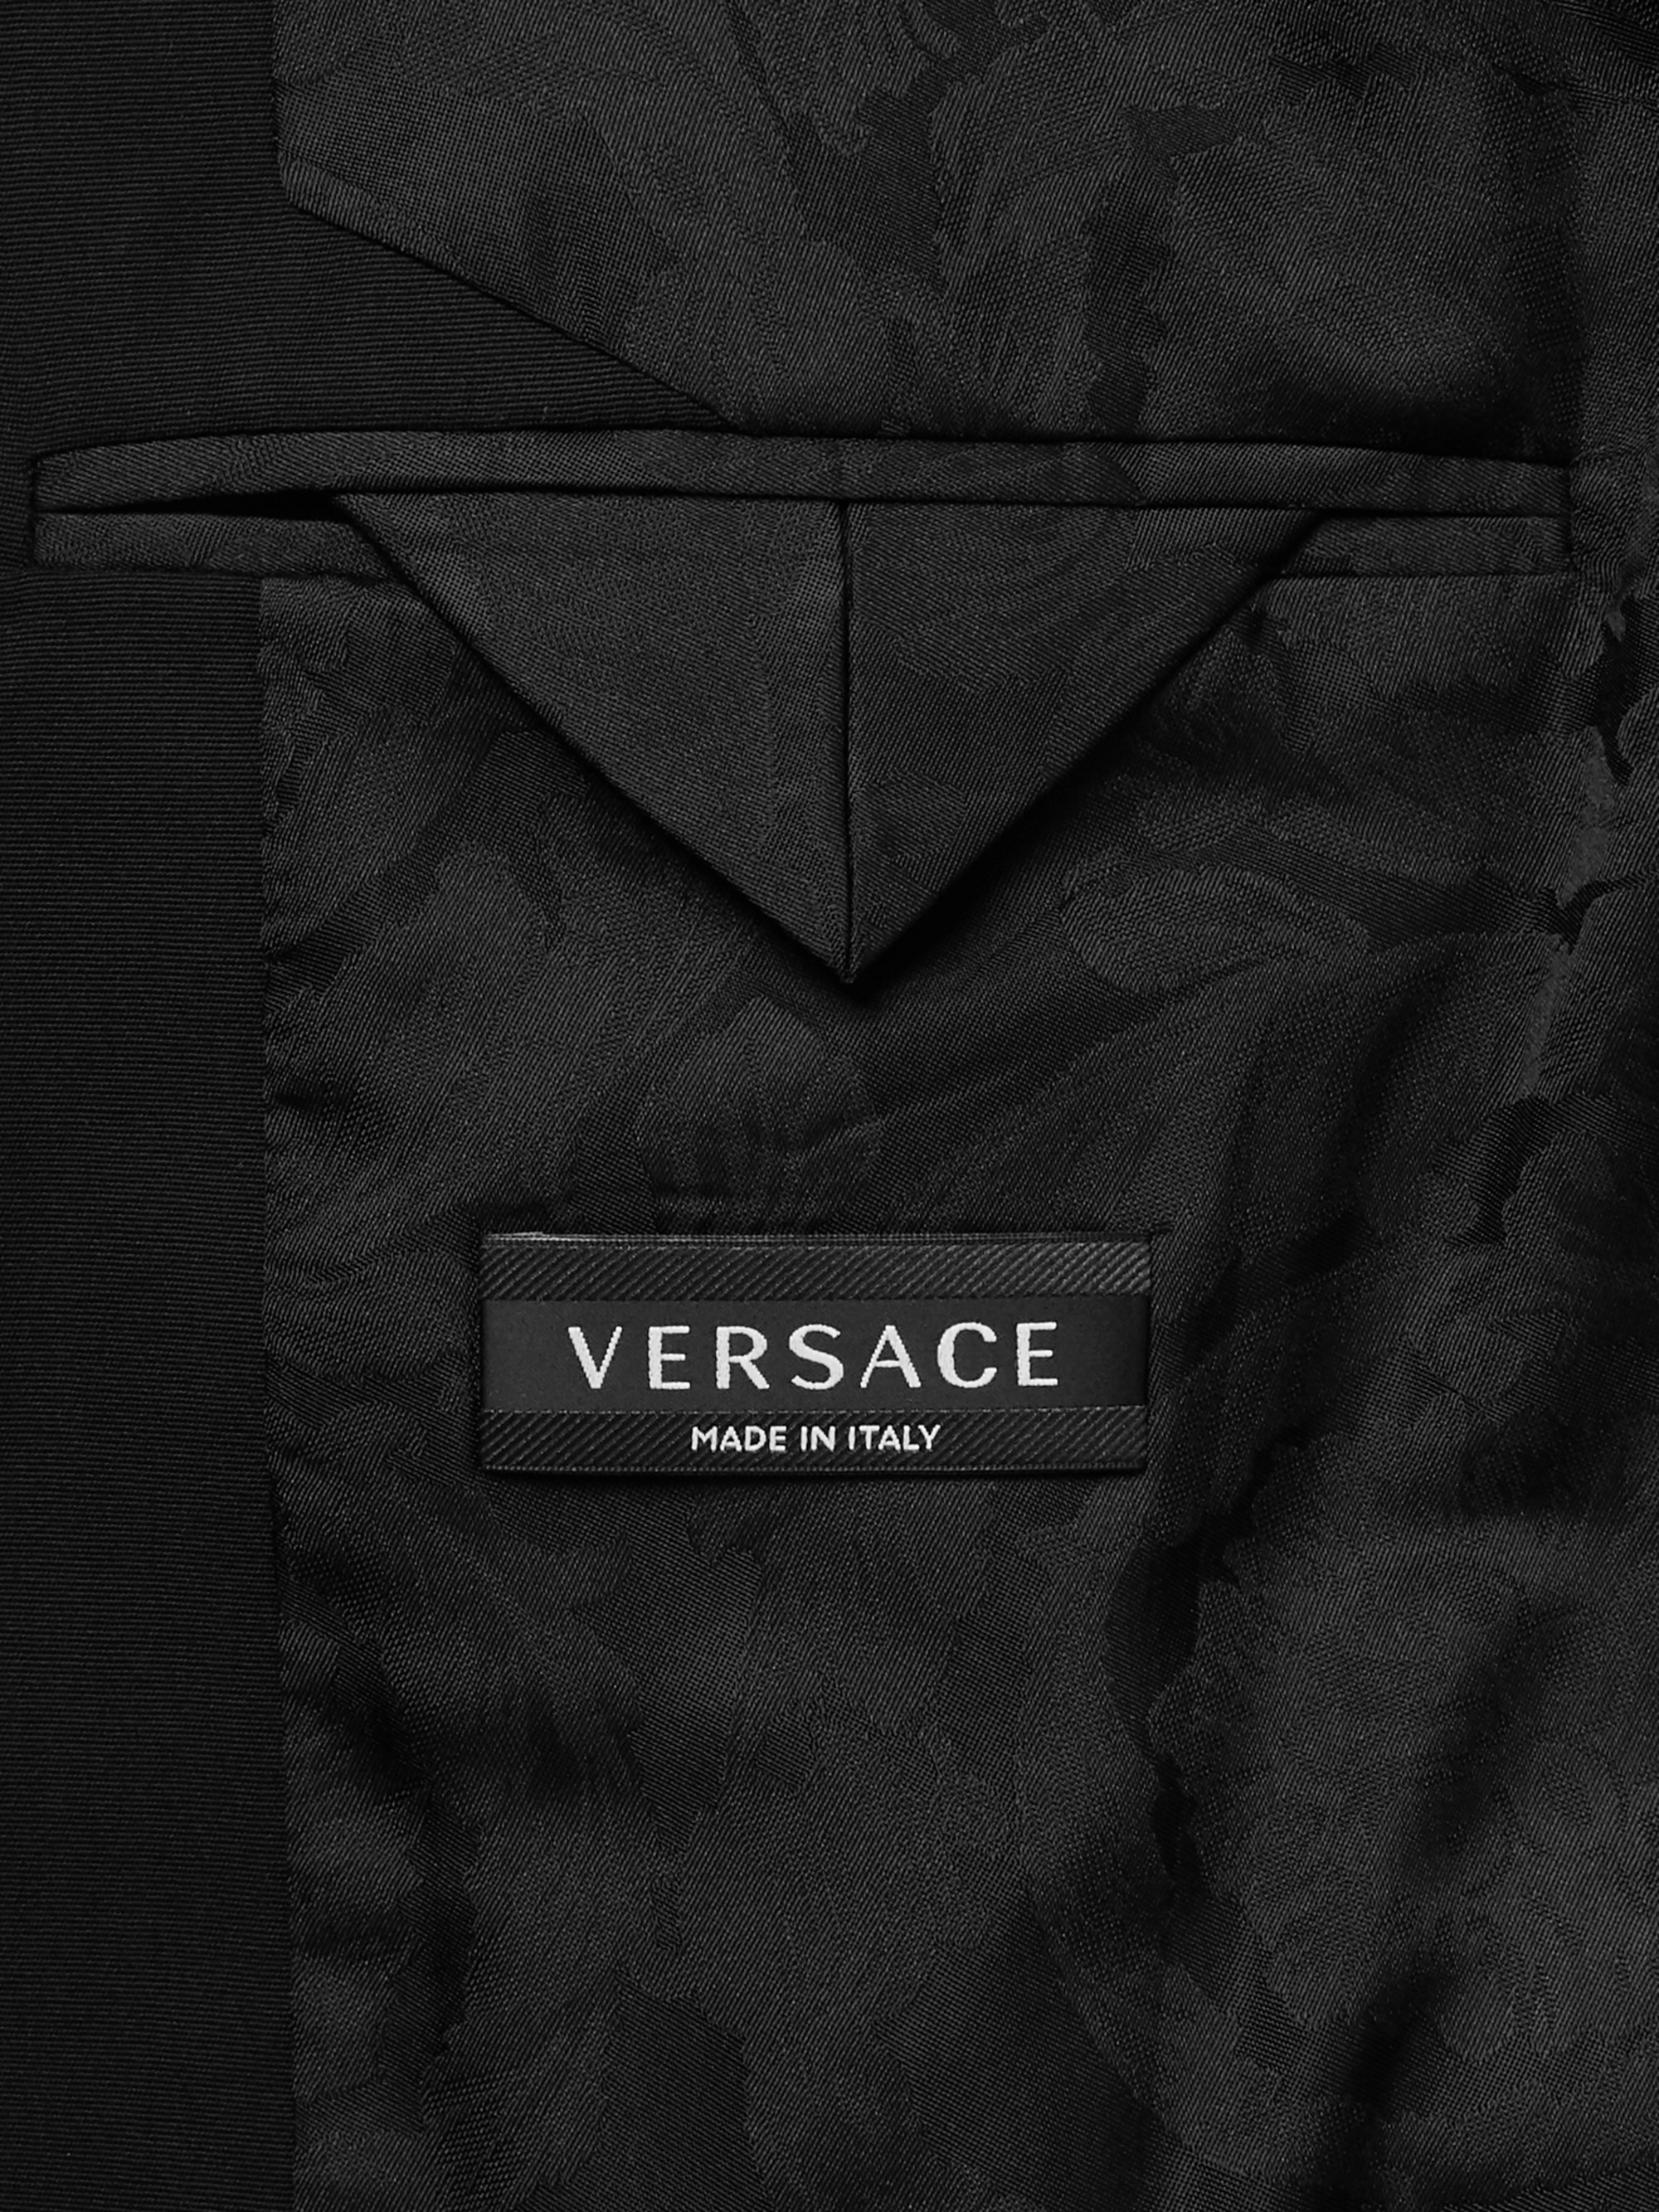 Versace Black Slim-Fit Contrast-Trimmed Virgin Wool Blazer